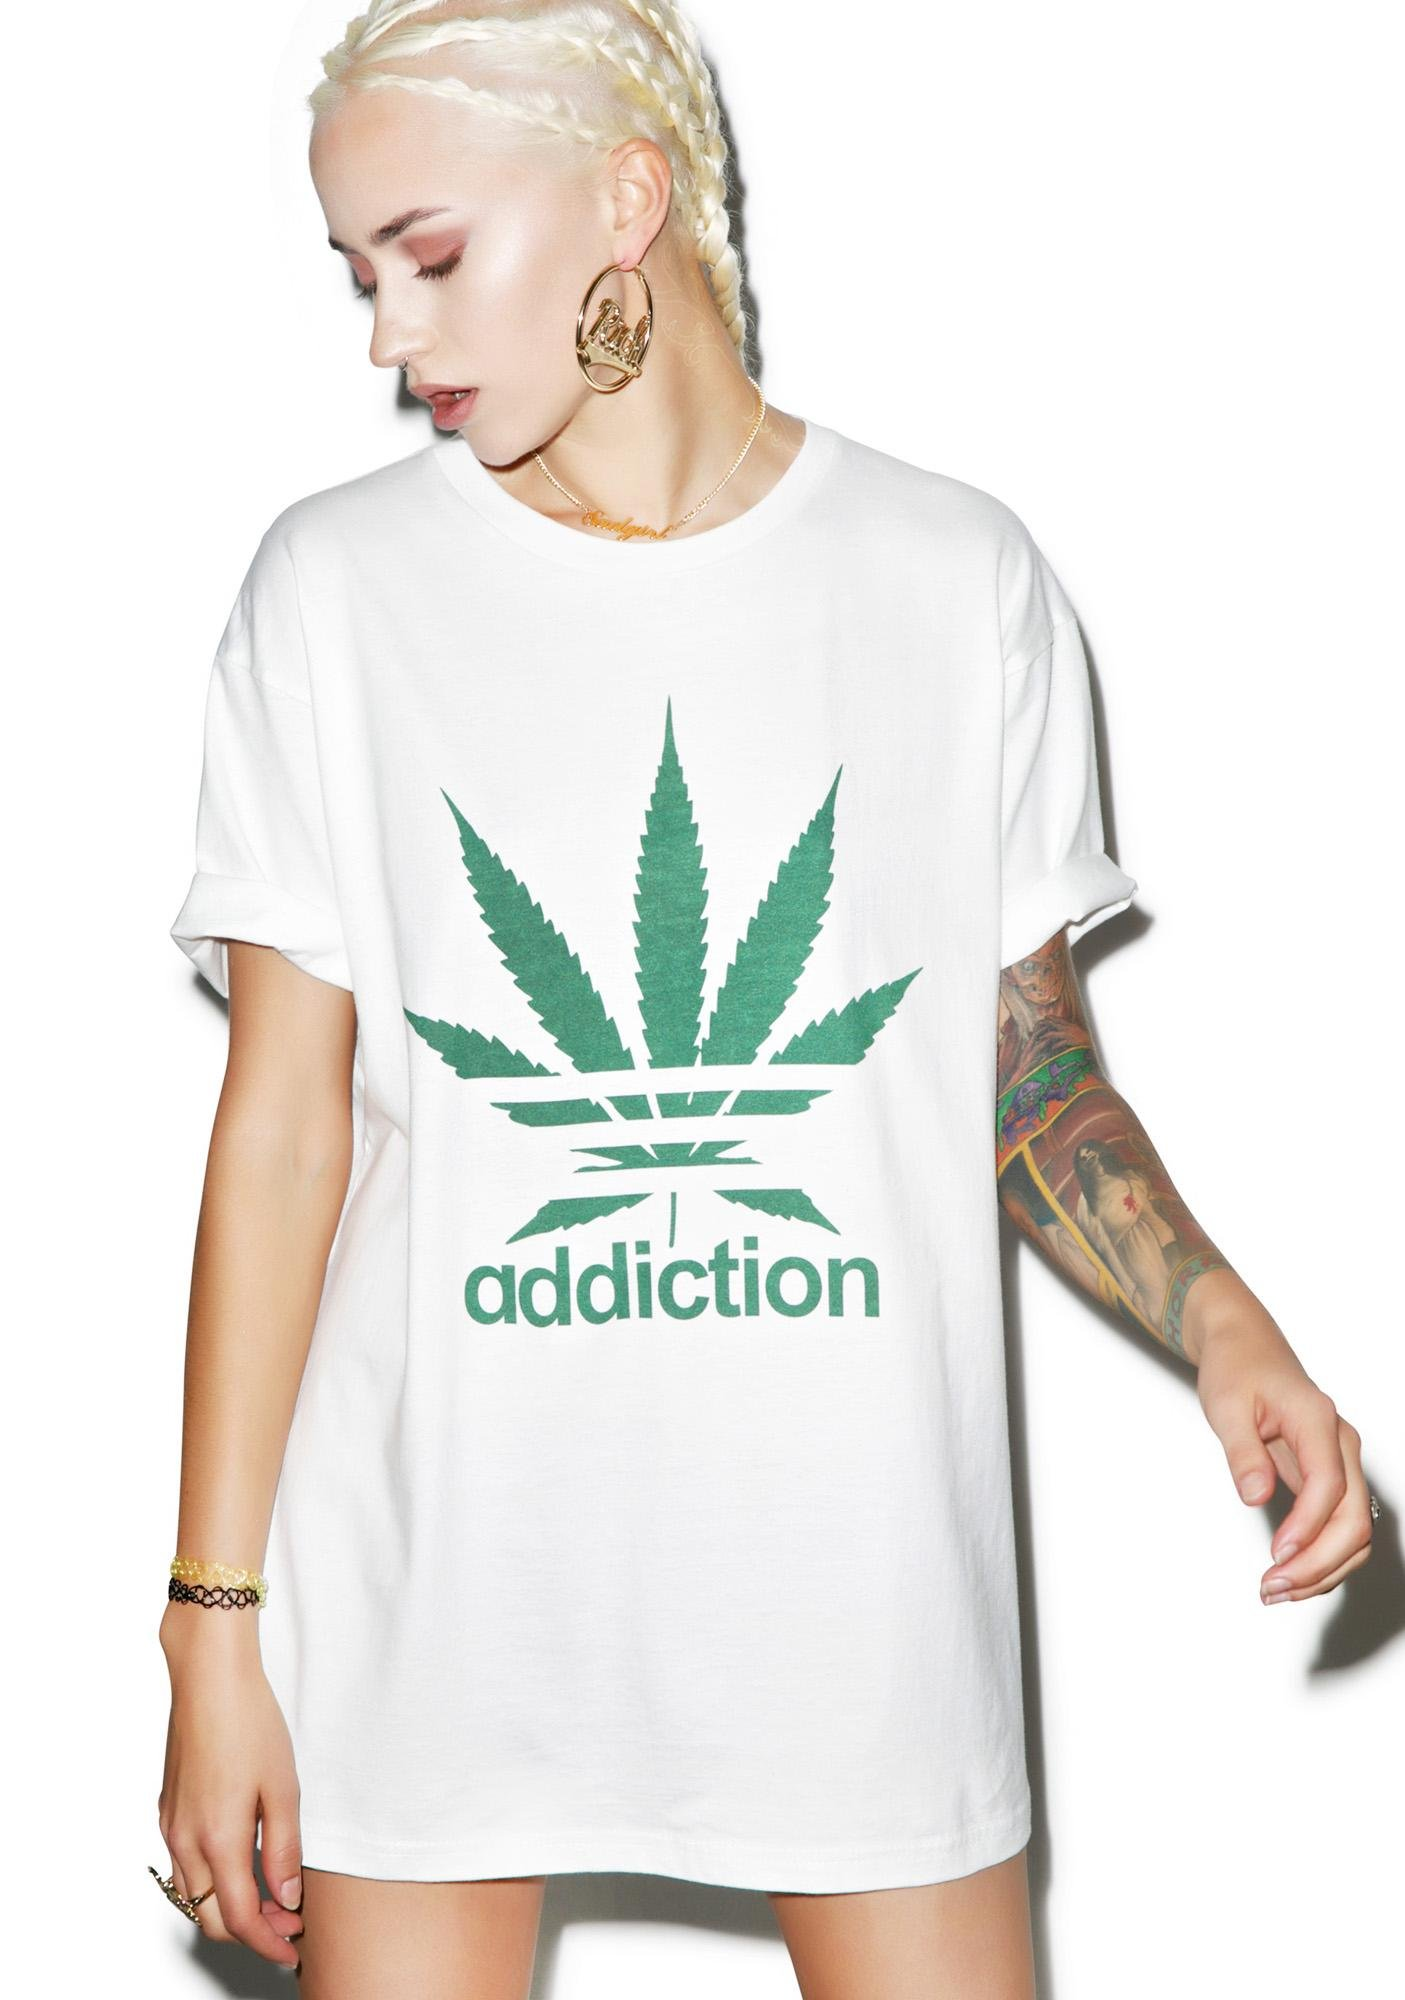 Addiction Tee